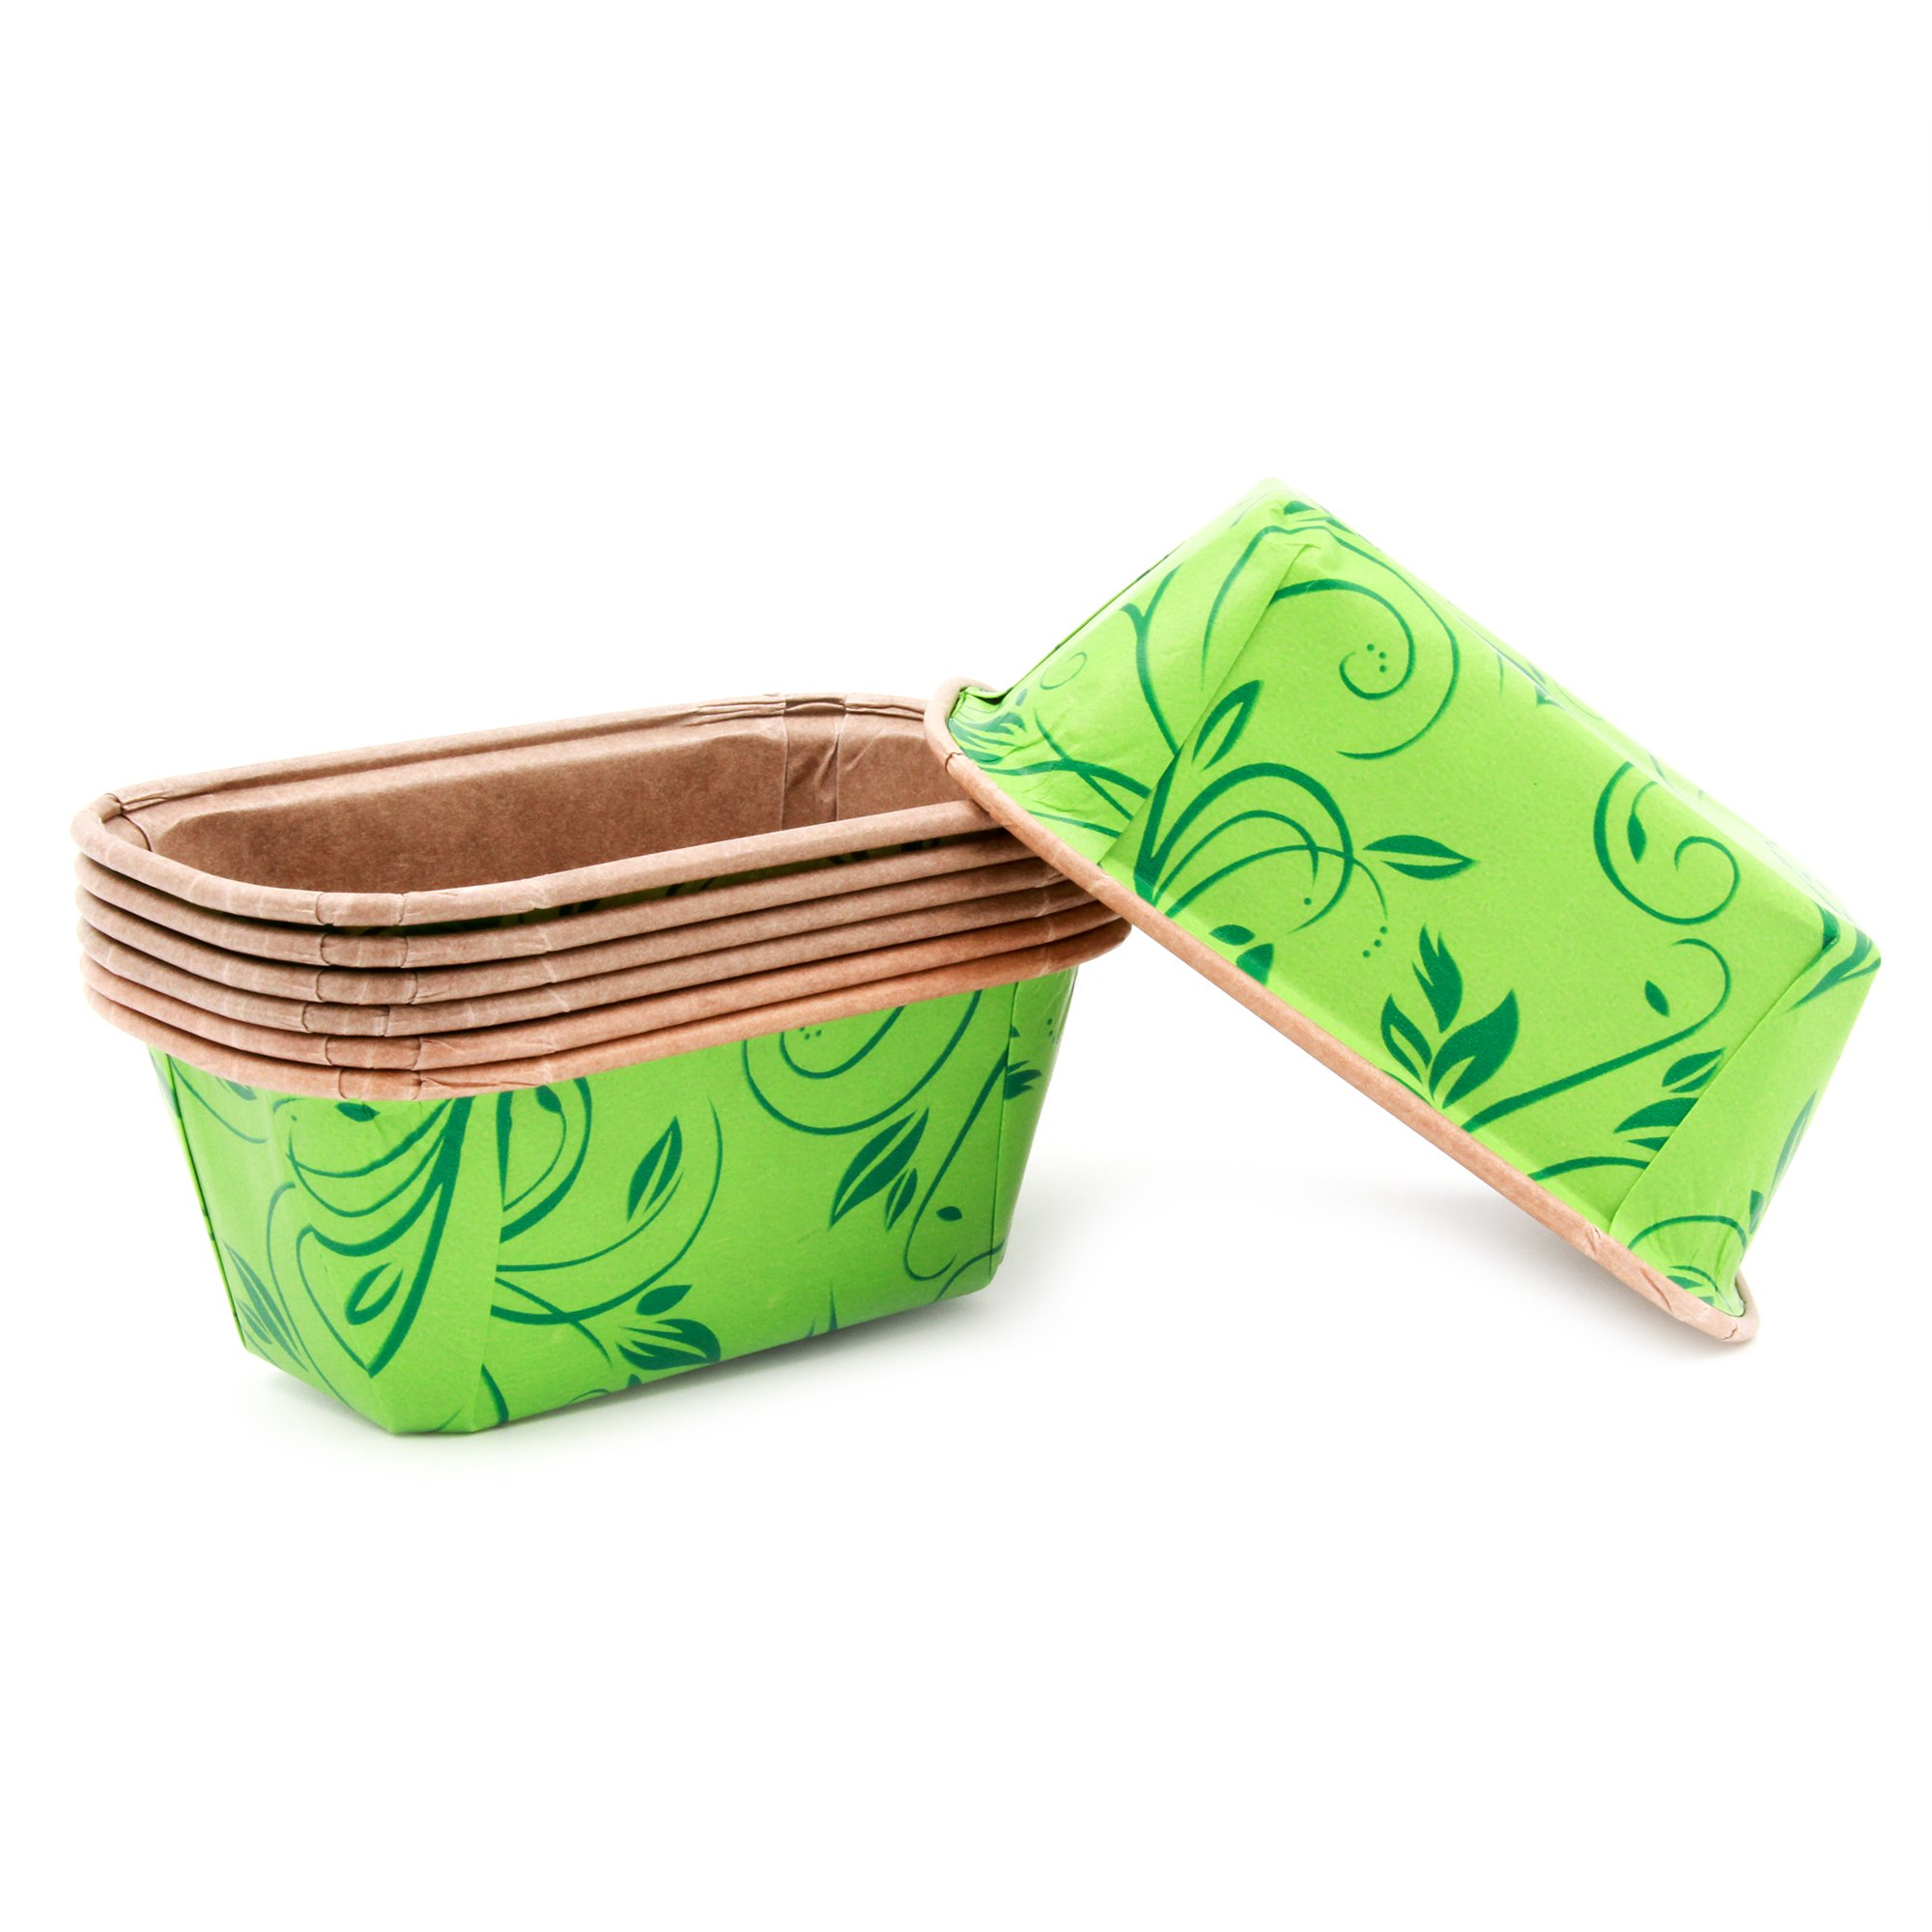 Premium Personal Mini Size Paper Baking Loaf Pan, Perfect for Chocolate Cake, Banana Bread Green Set of 30 - by EcoBake